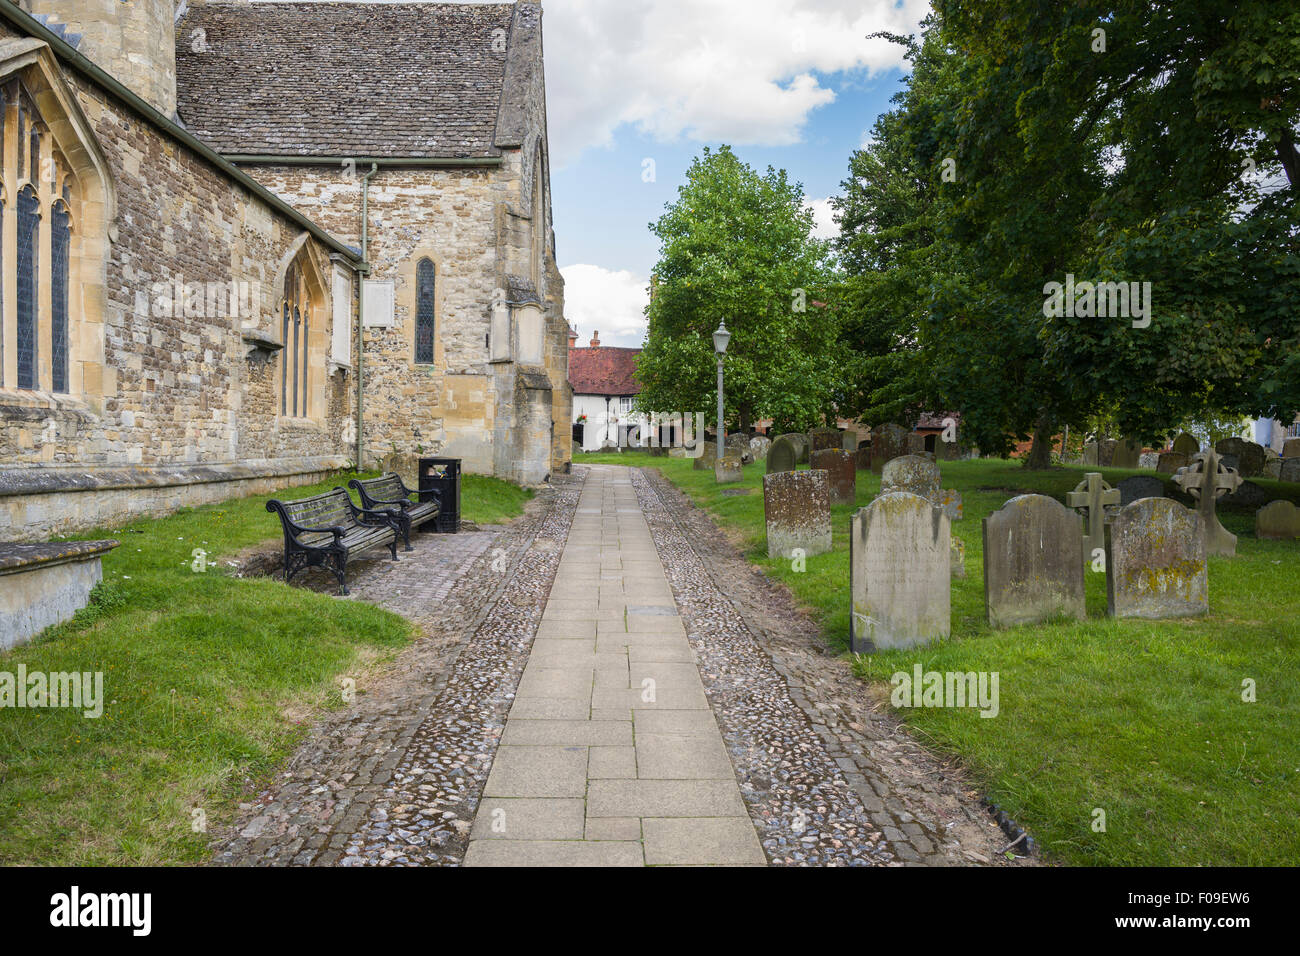 The Parish Church of St. Peter and St. Paul in Wantage, Oxfordshire,England,U.K. - Stock Image